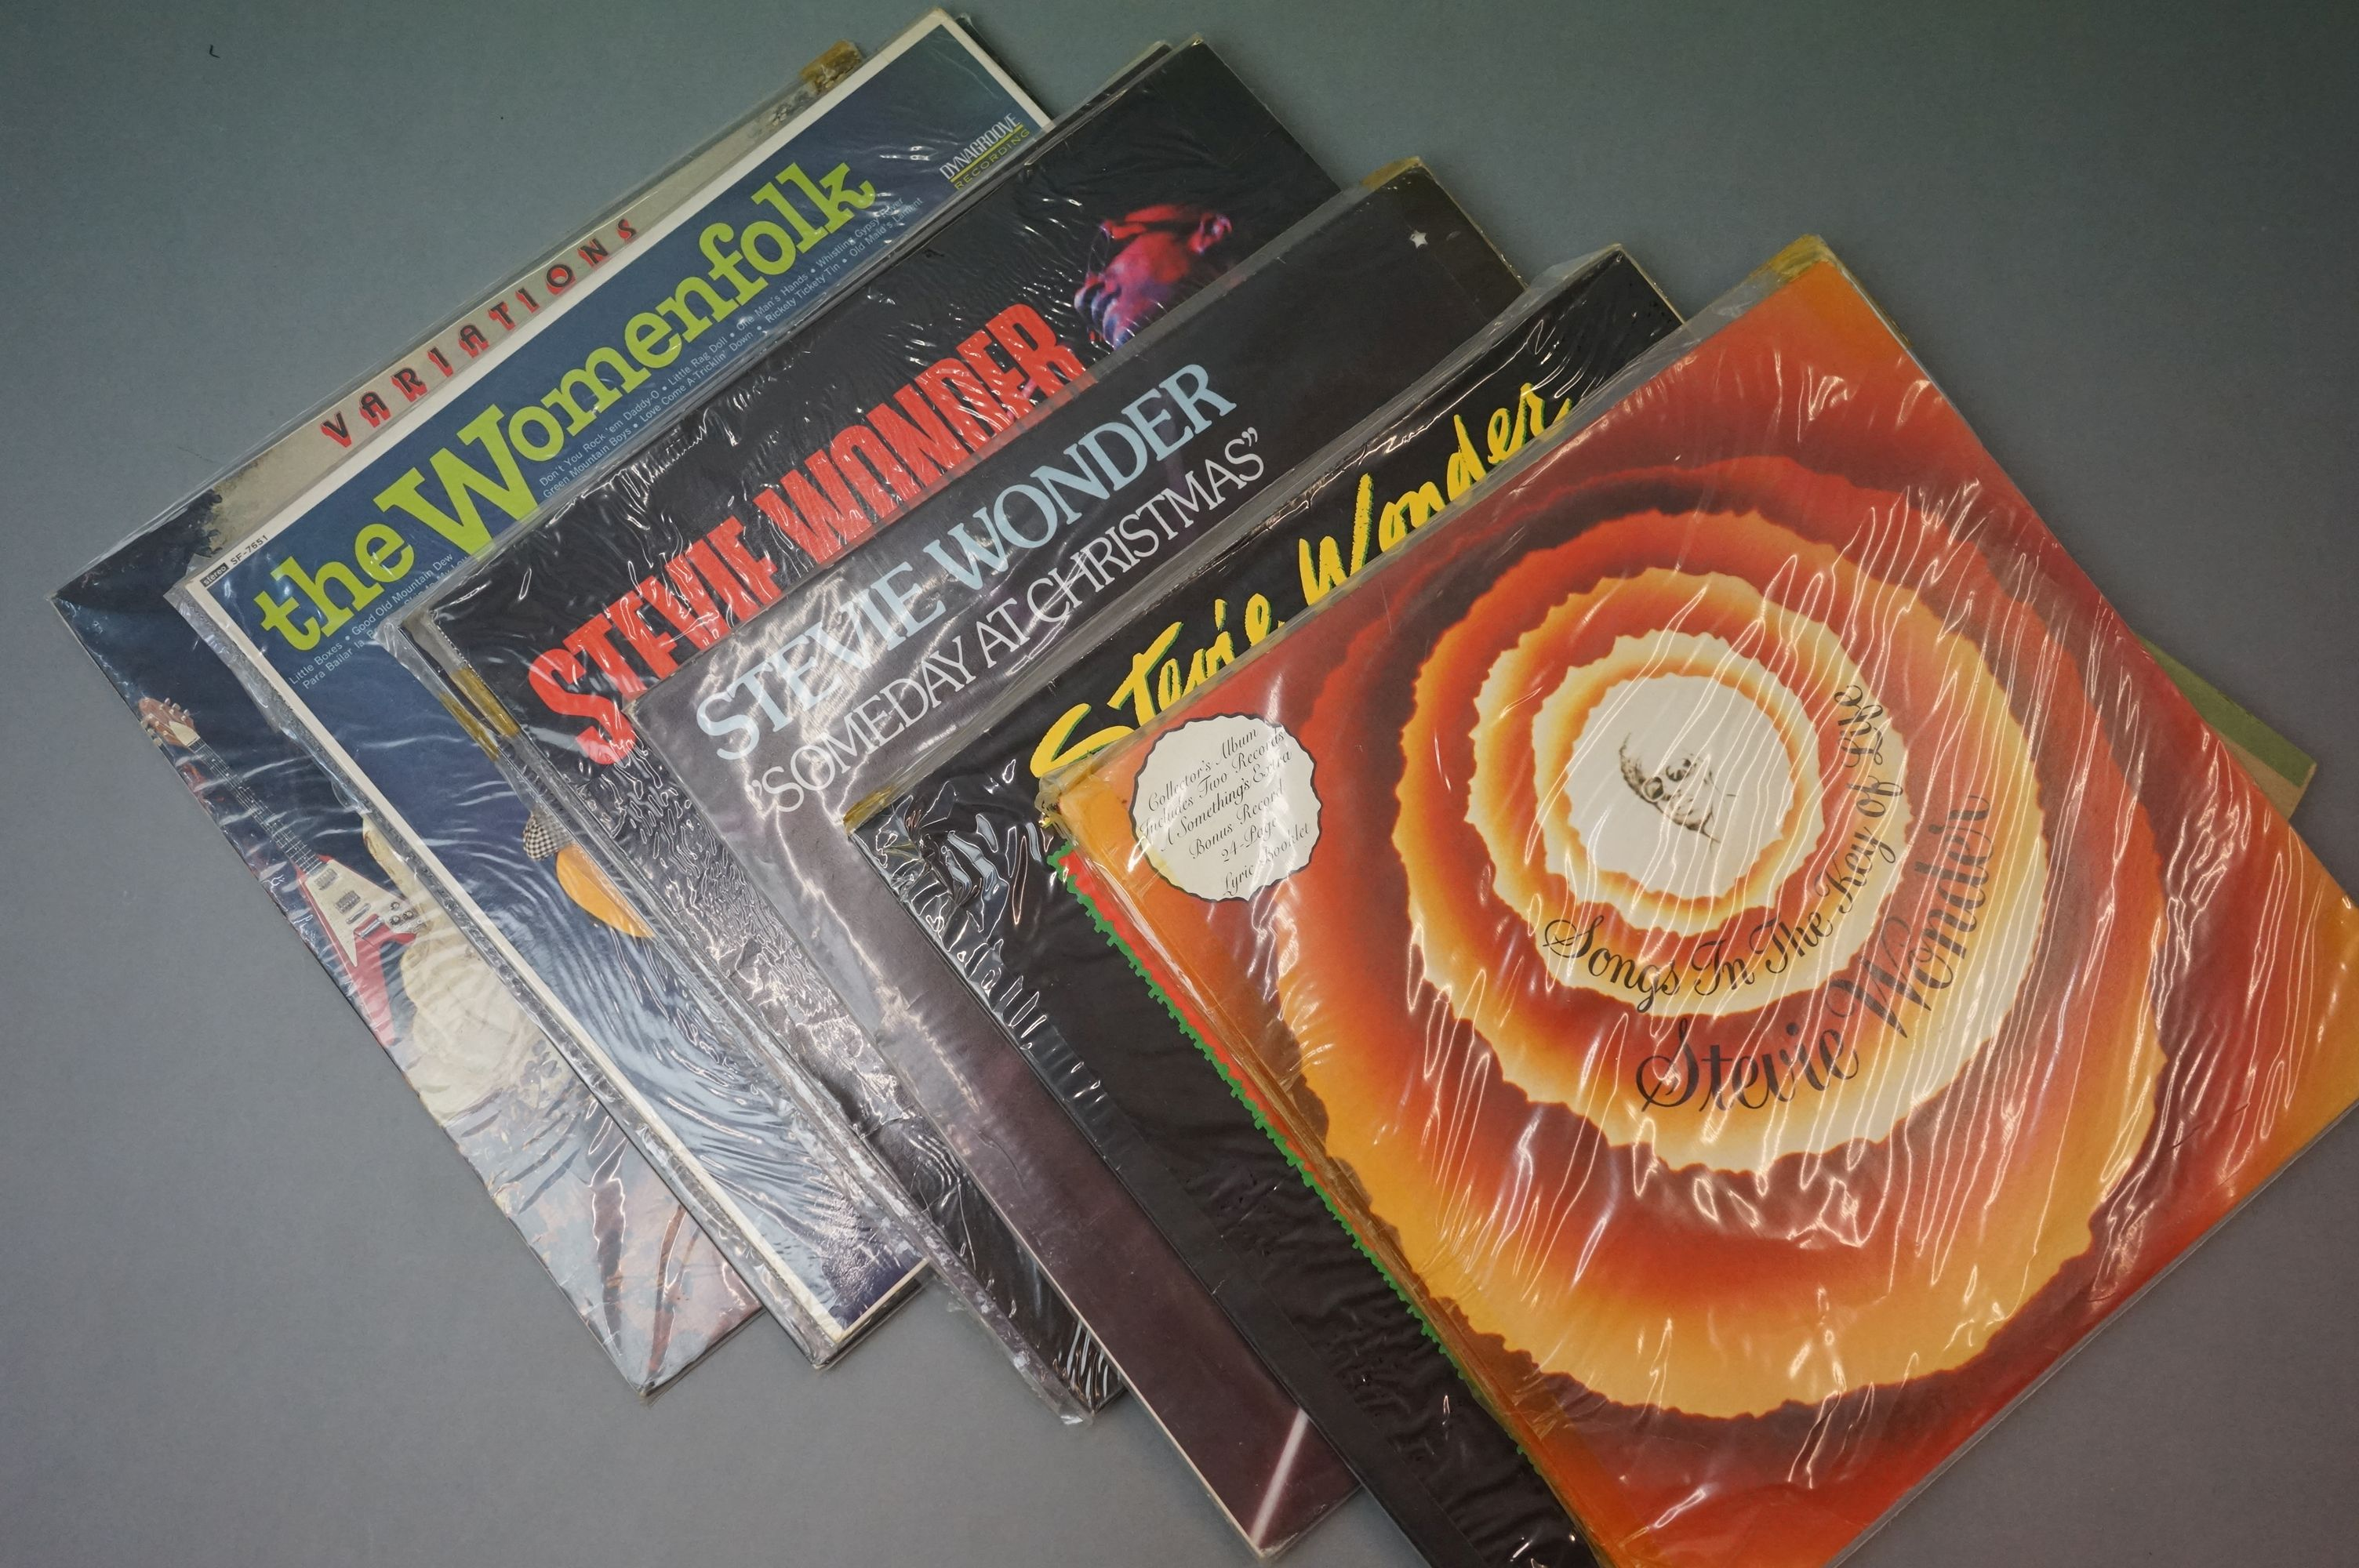 Vinyl - Over 200 LPs to include various genres featuring Link Wray, Tammy Wynette, Decca Digital, - Image 2 of 3